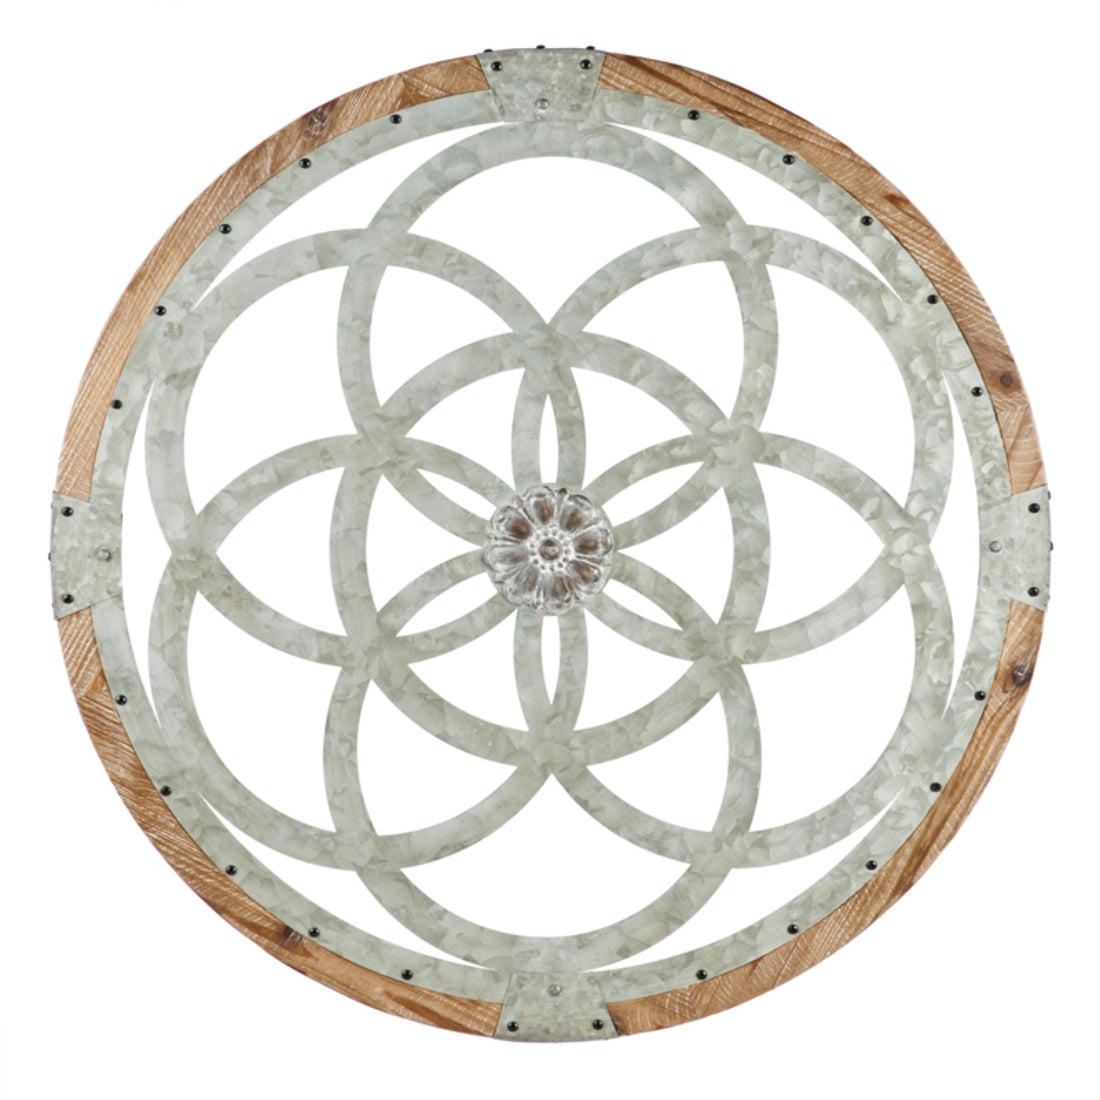 Galvanized Metal And Wood Medallion Wall Decor Set of Two